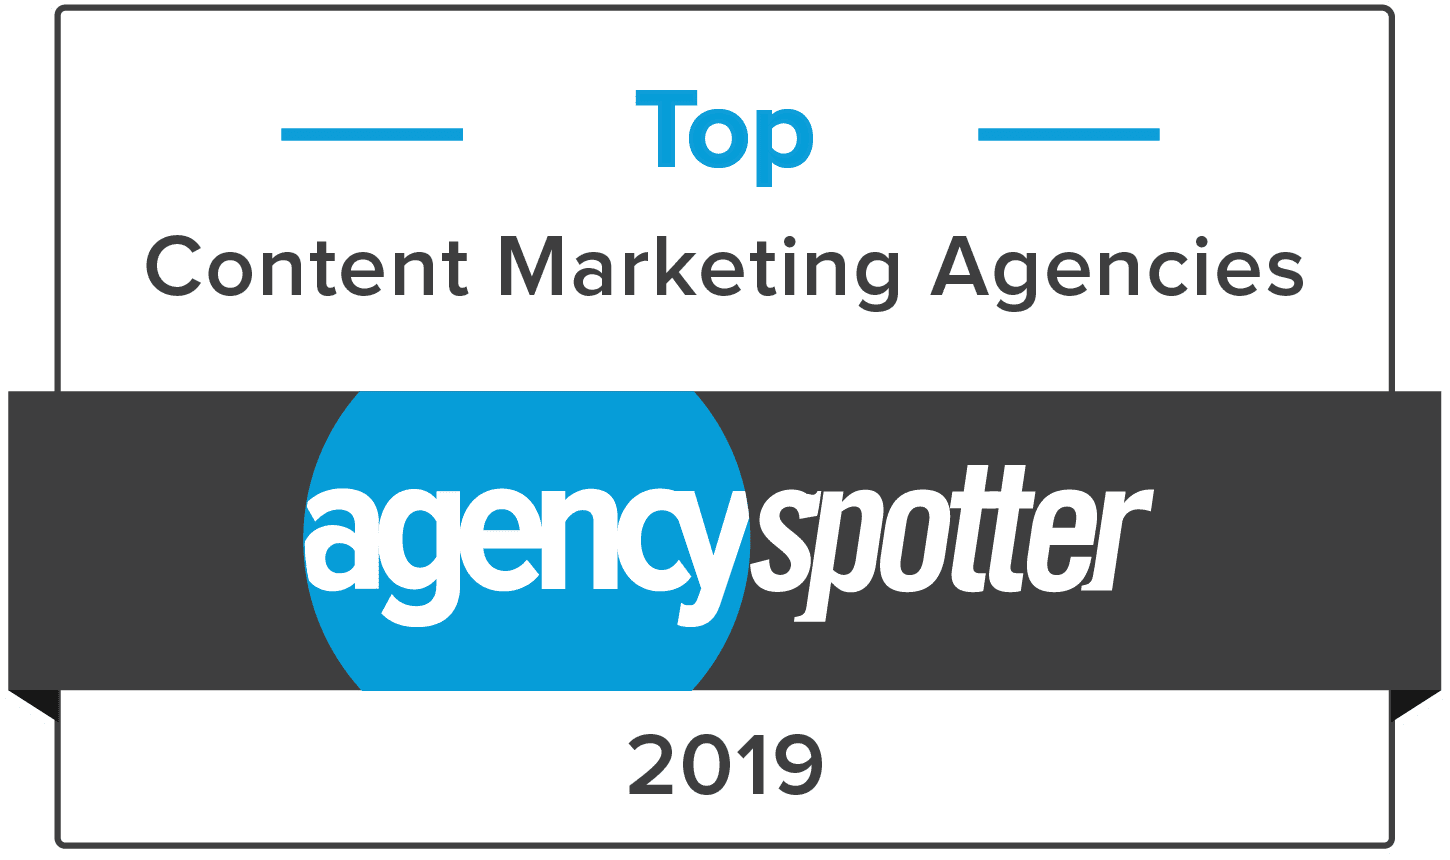 Content marketing agencies 2019 d57ffdd8f6d3fb5c7285c8b53765a23fe74675d4190268e9e17ee6e75600a29d